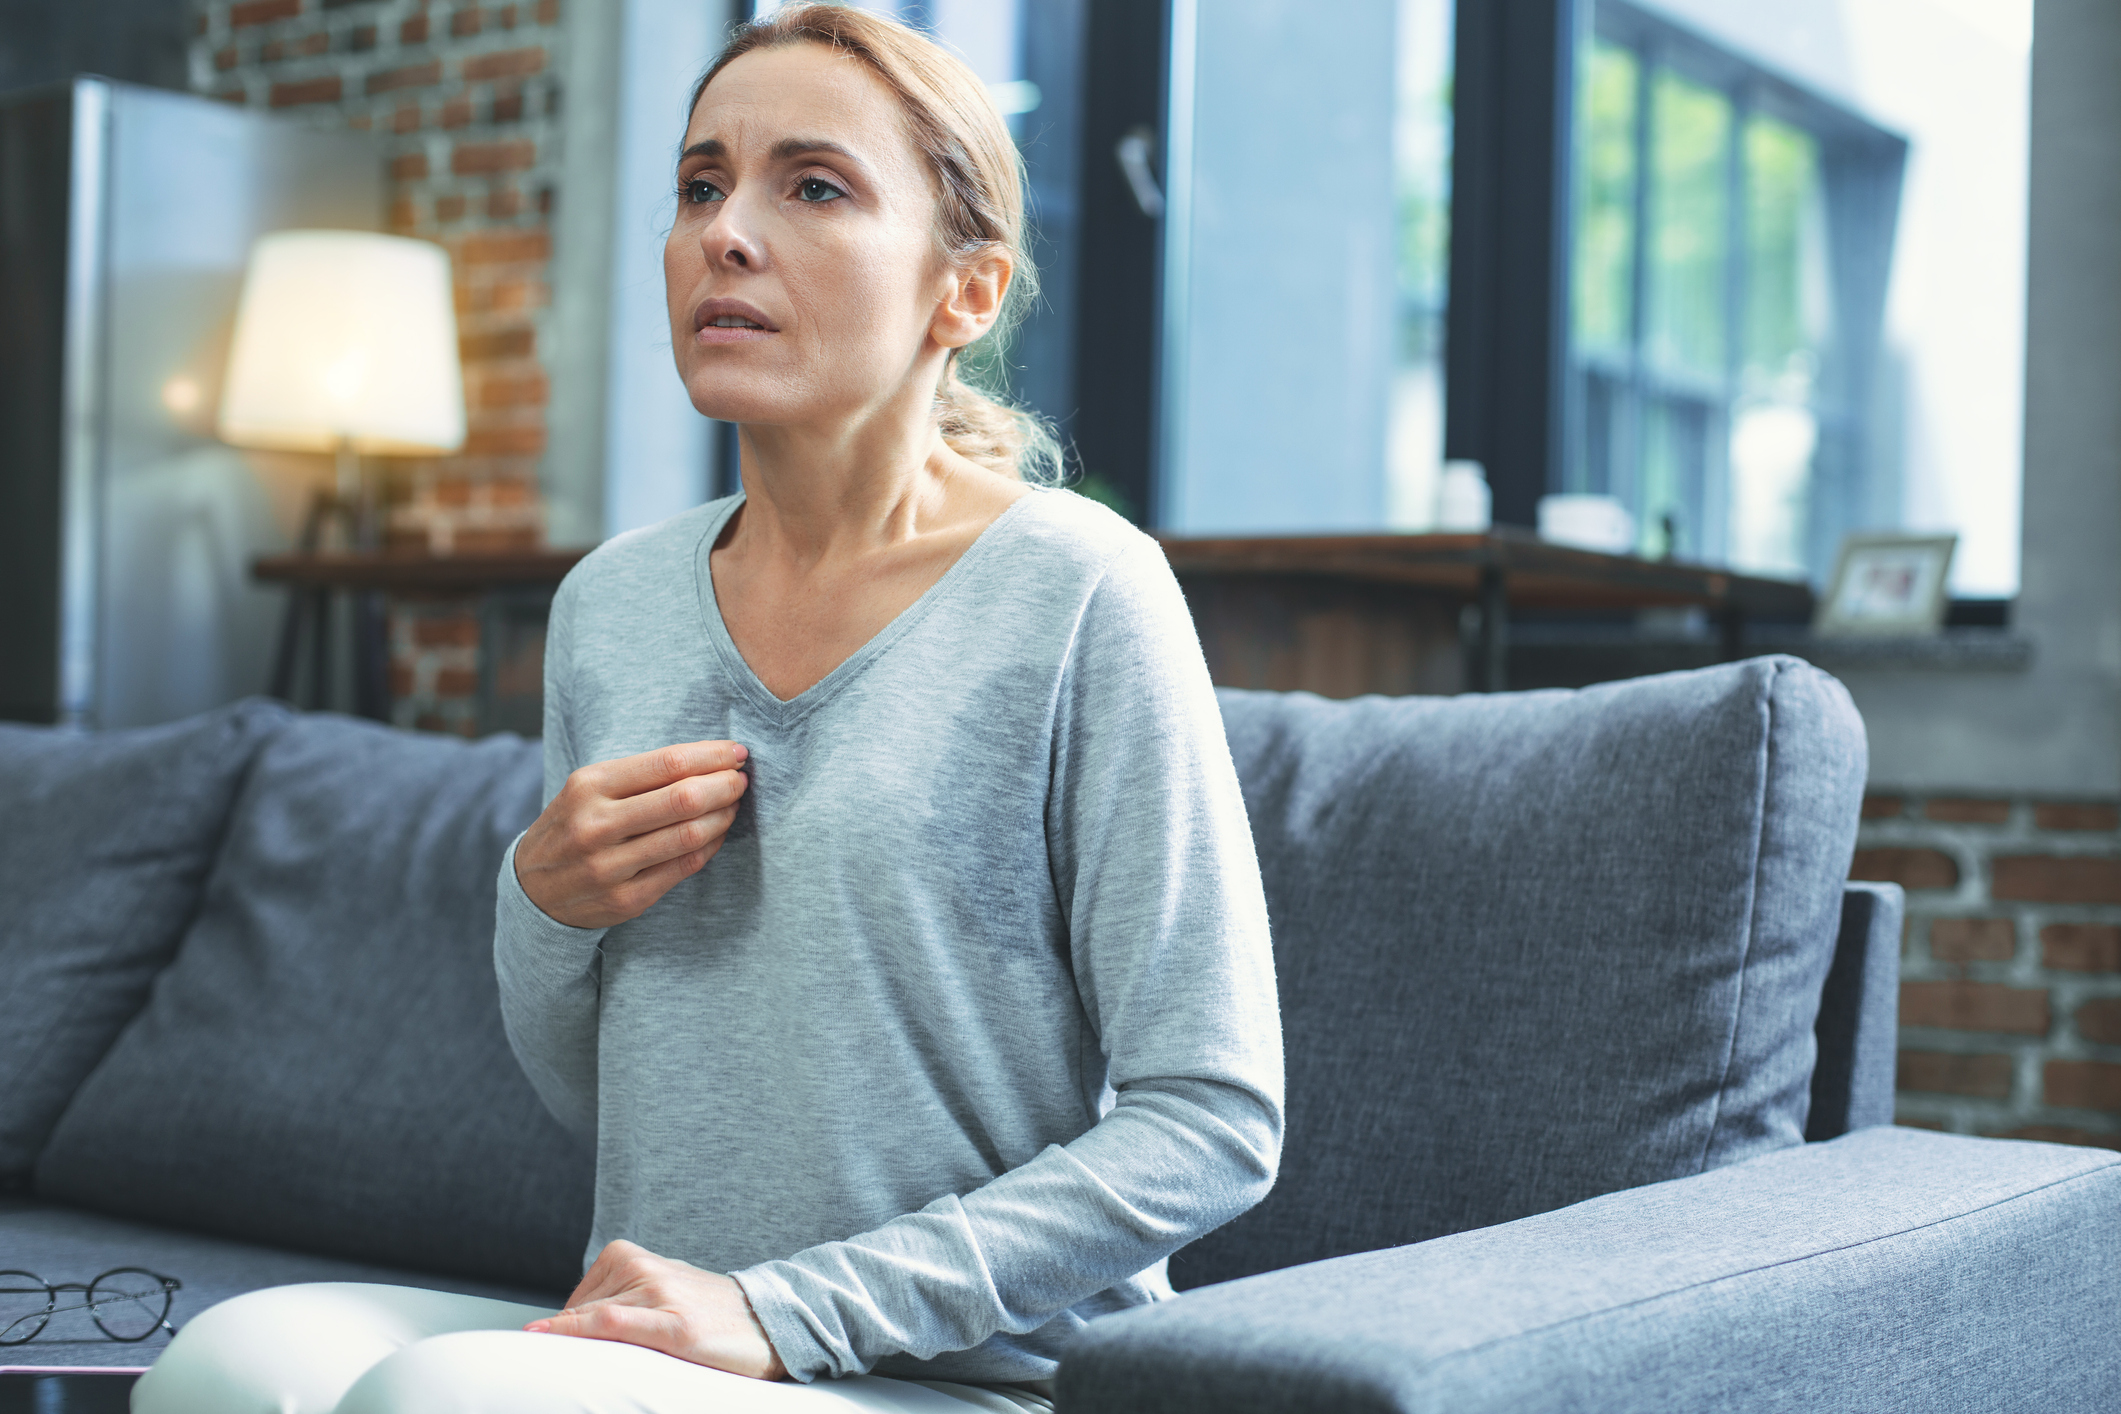 Why a thyroid problem could be fueling your anxiety